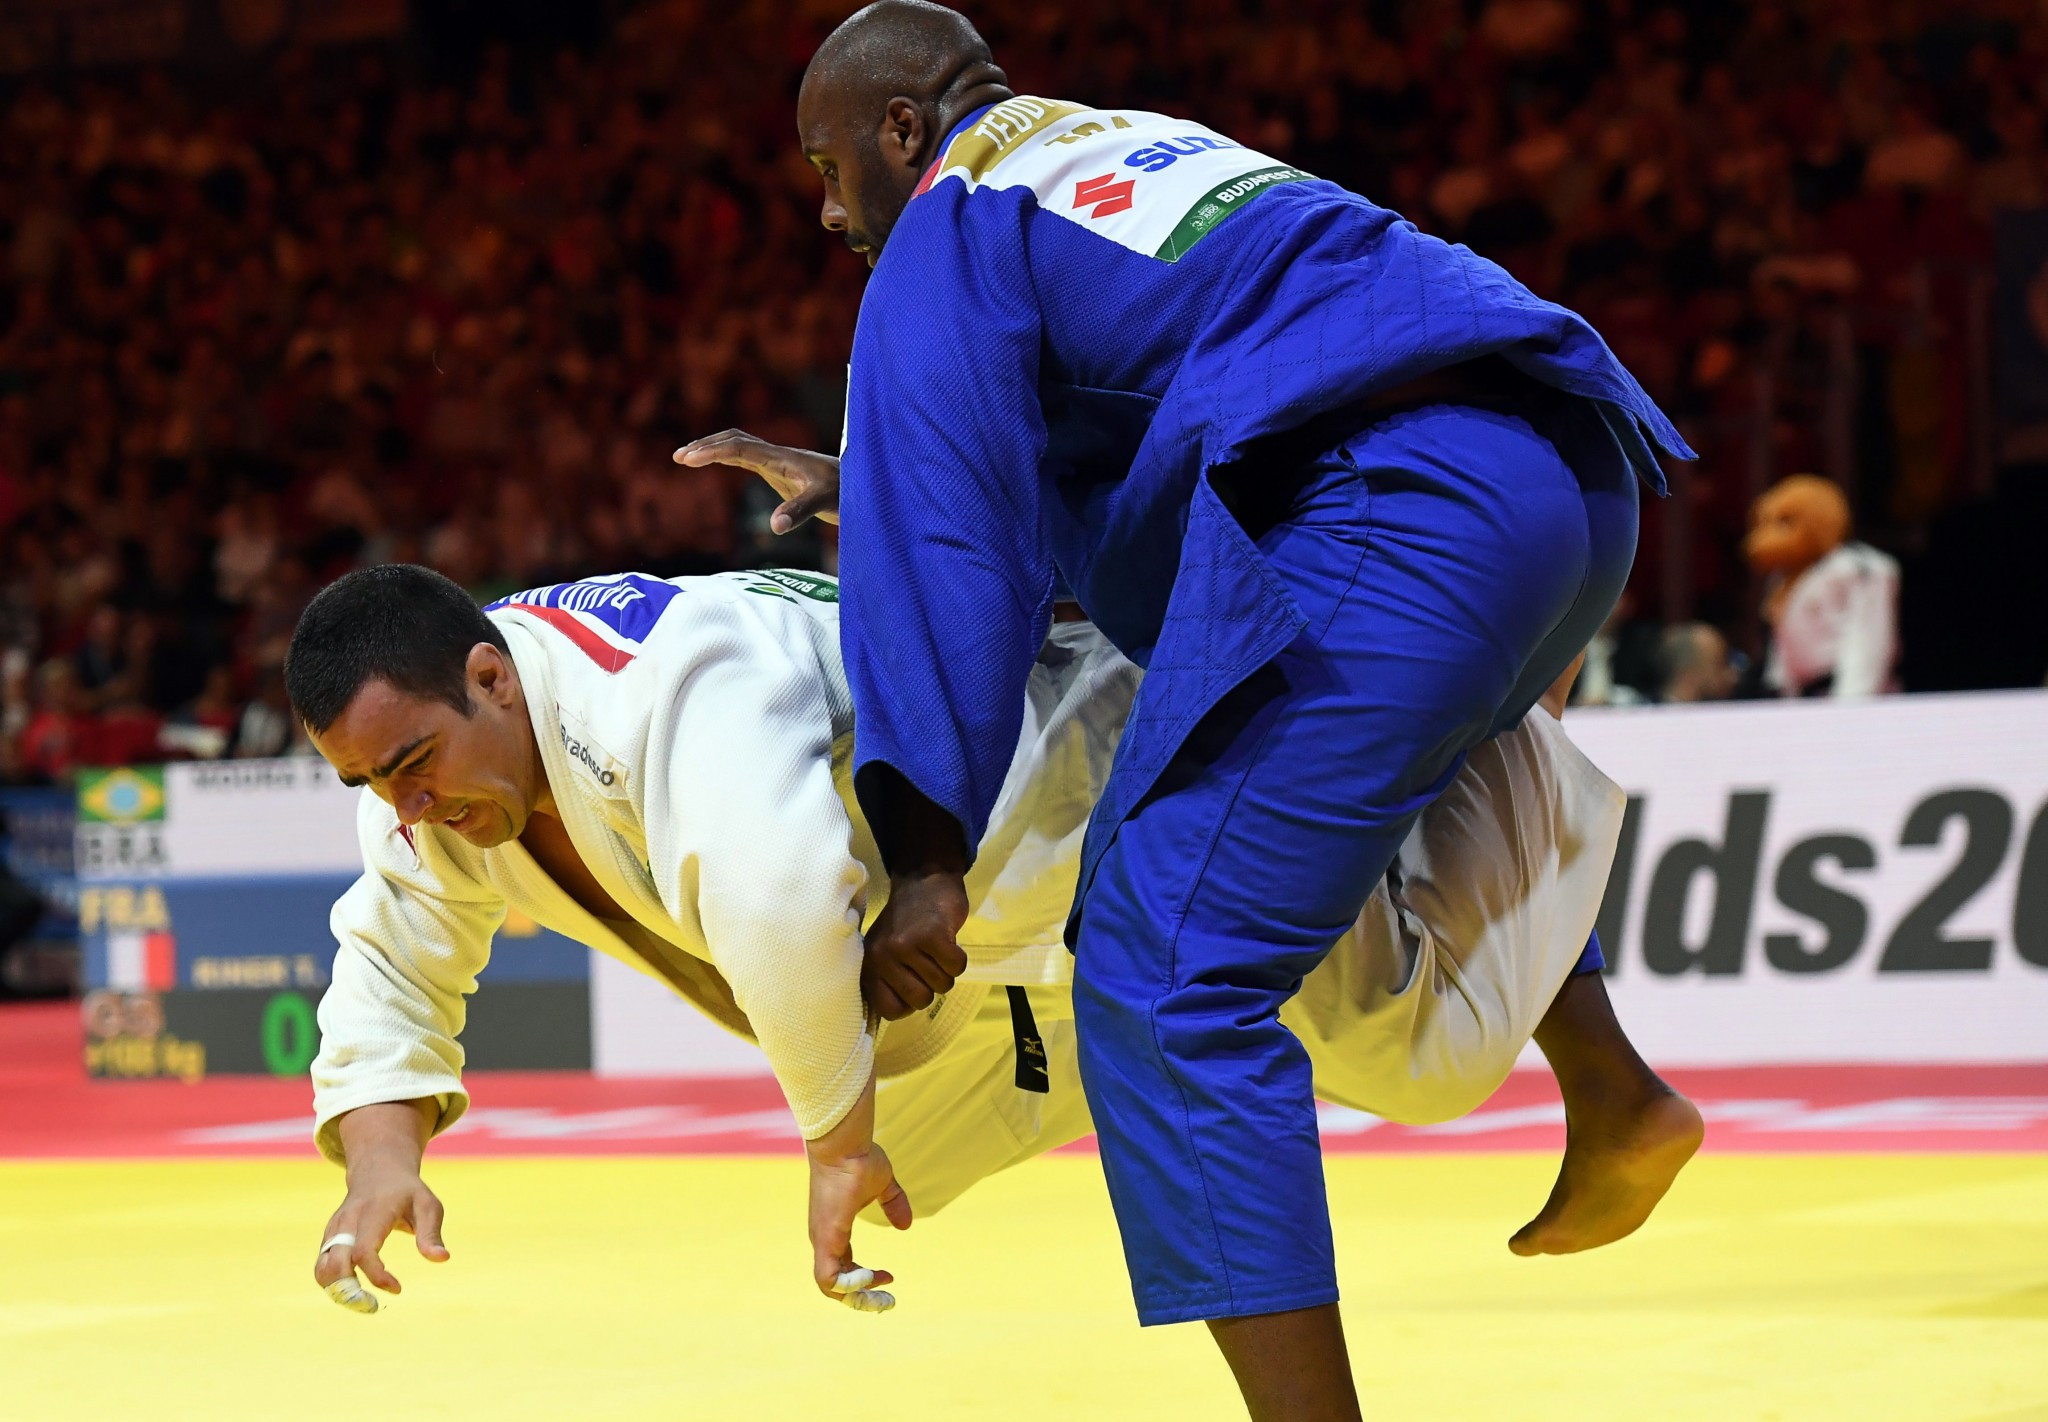 Teddy Riner was pushed all the way in the final by Brazilian opponent David Moura ©Getty Images